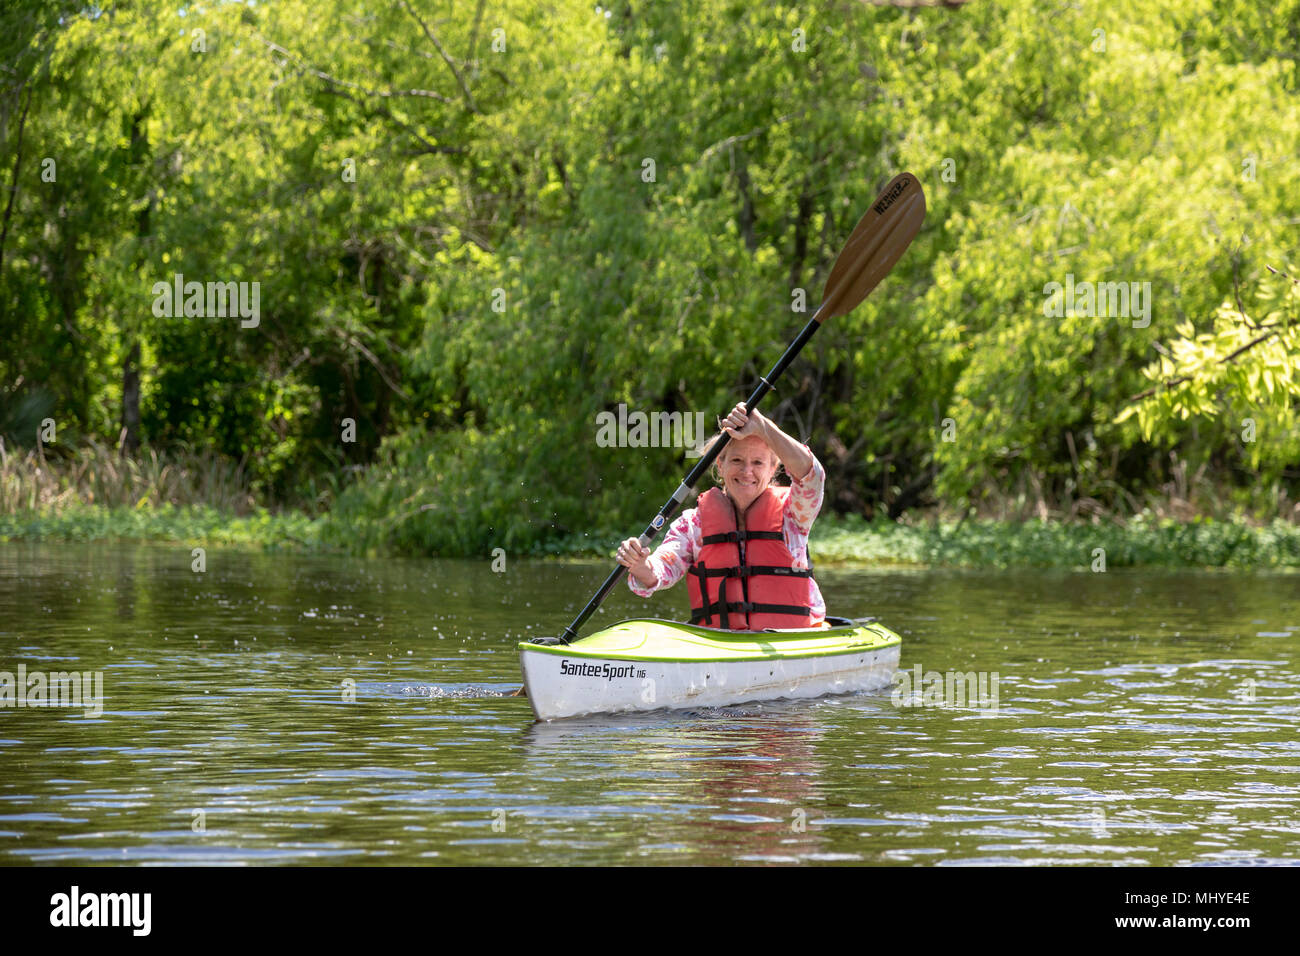 LaPlace, Louisiana - Maureen Sheahan participates in an environmental kayak tour in the Maurepas Swamp Wildlife Management Area near New Orleans. The  - Stock Image